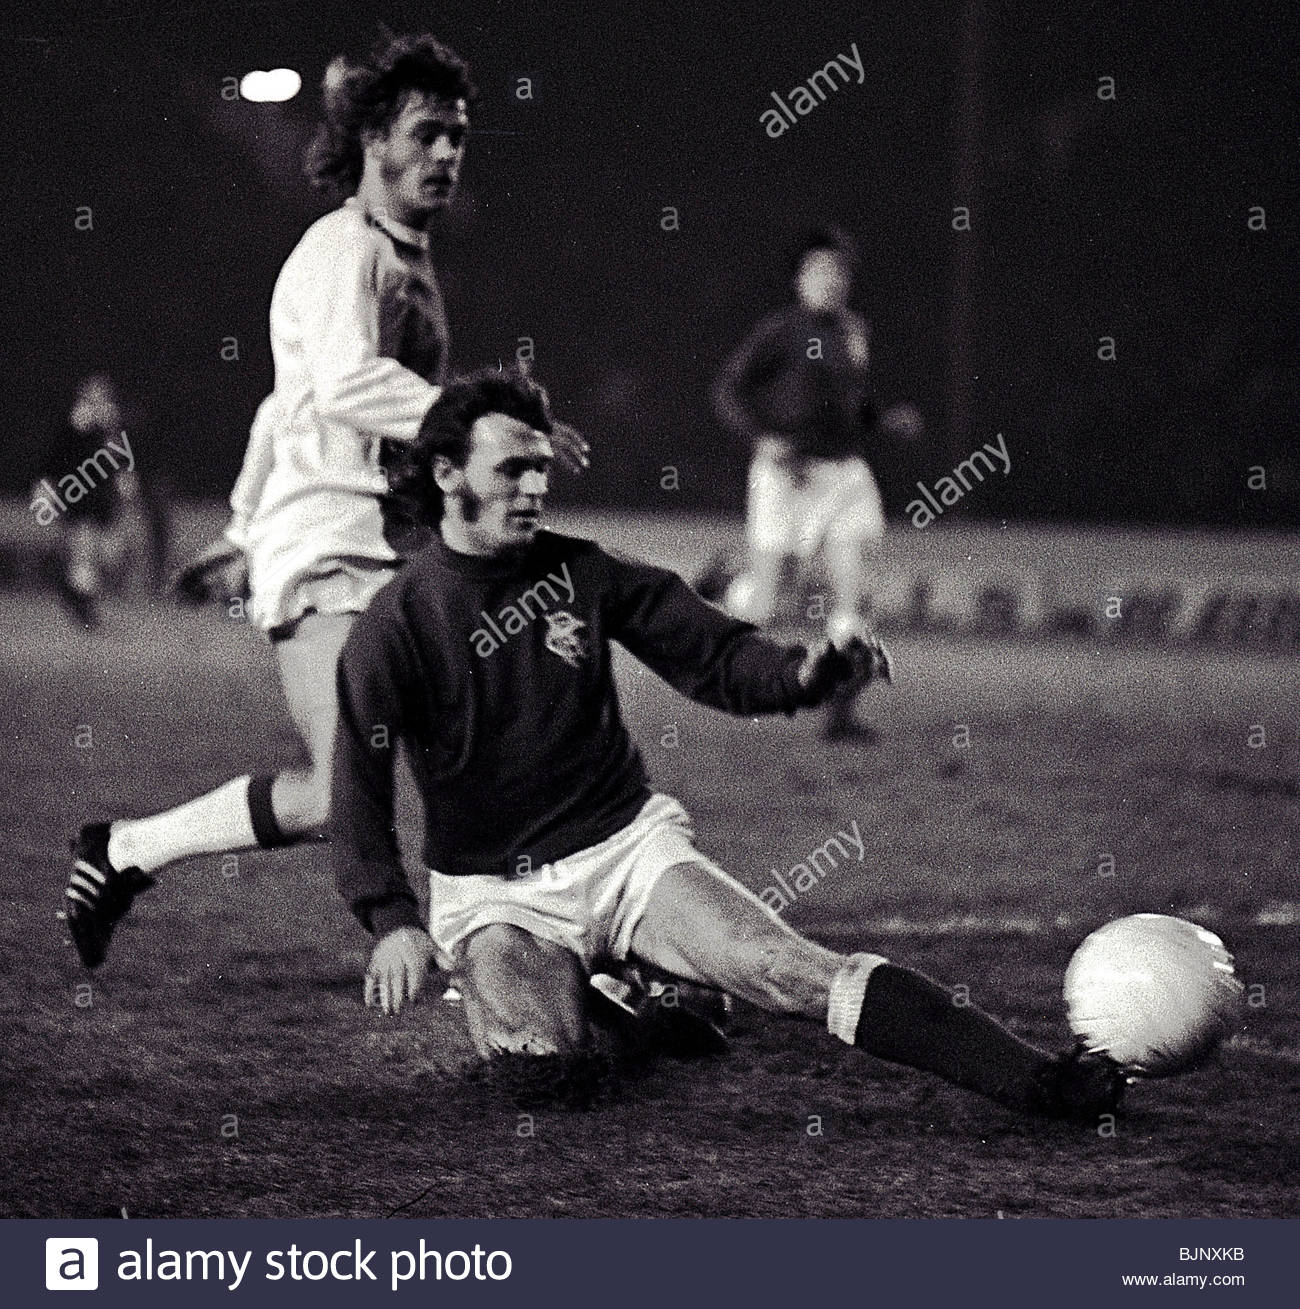 16/01/73 UEFA SUPER CUP FINAL 1ST LEG RANGERS v AJAX IBROX - GLASGOW Willie Mathieson (right) of Rangers - Stock Image